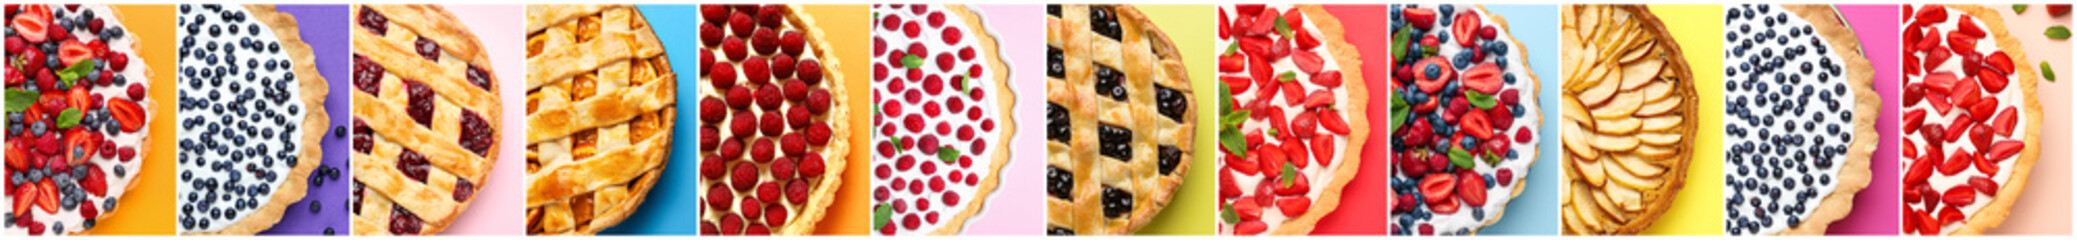 Collage of photos with different tasty pies